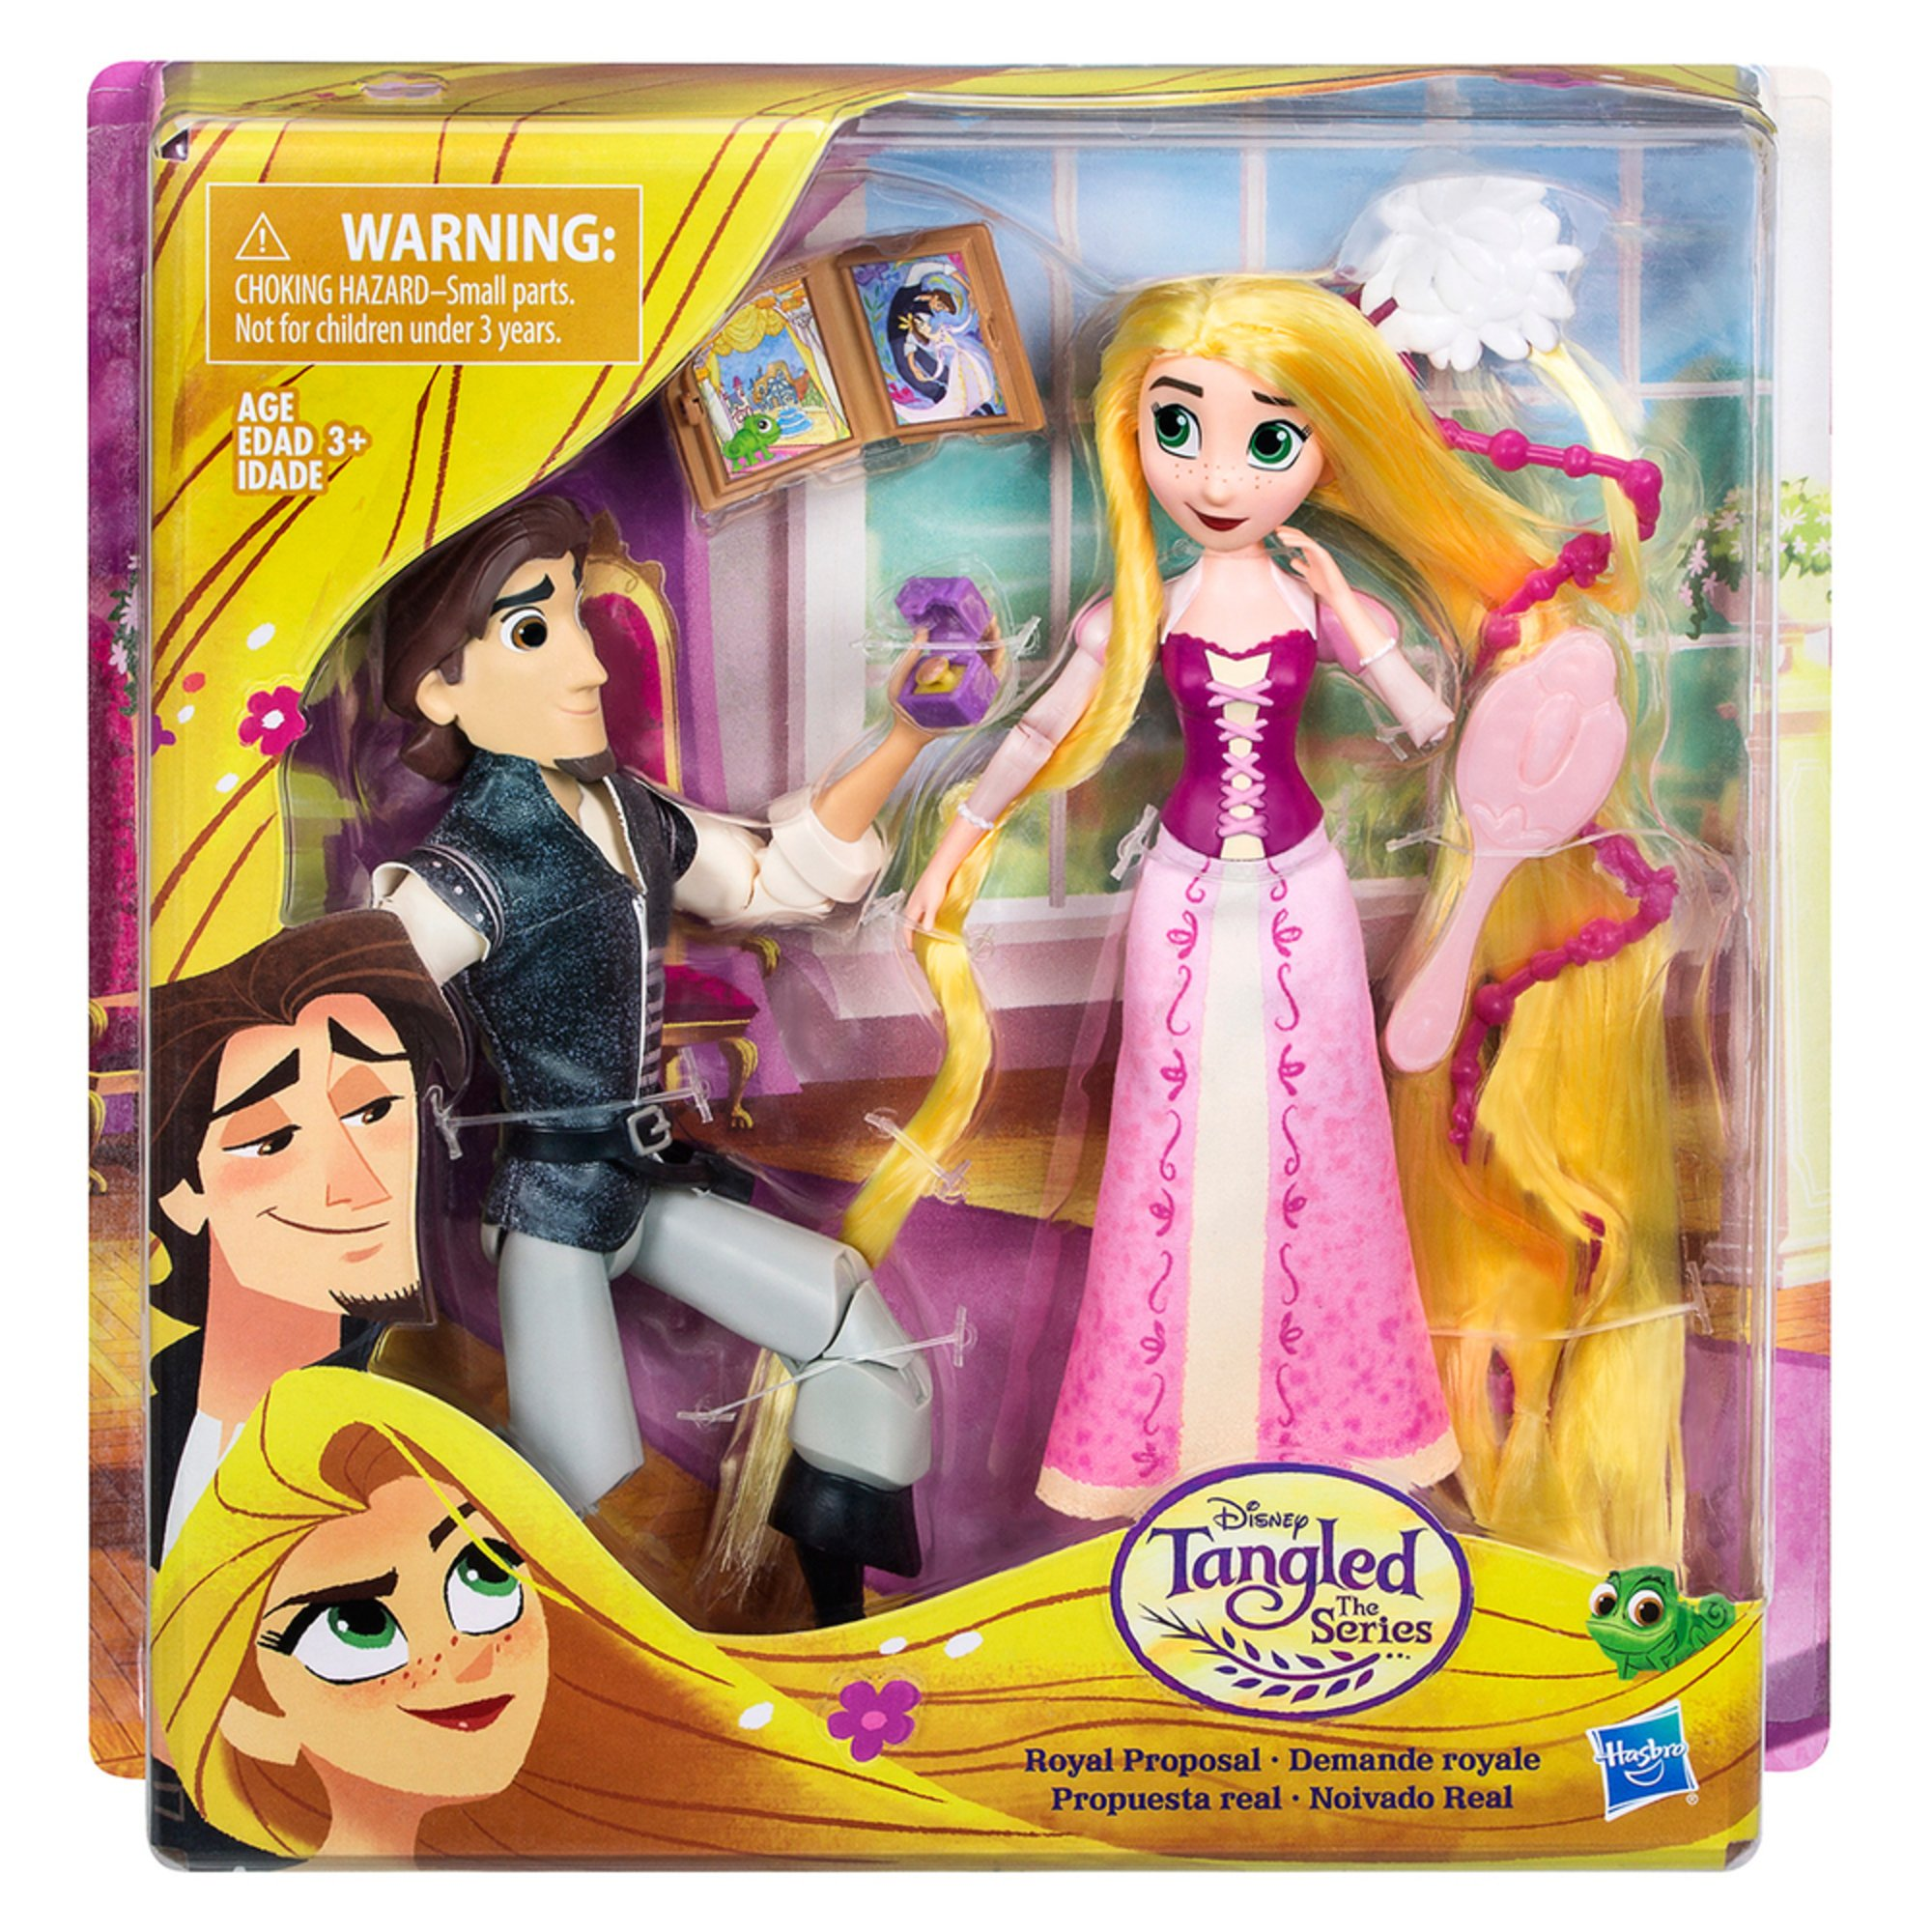 Disney Tangled The Series Royal Proposal Doll Play Set Search Results Parent Category Shop Your Navy Exchange Official Site